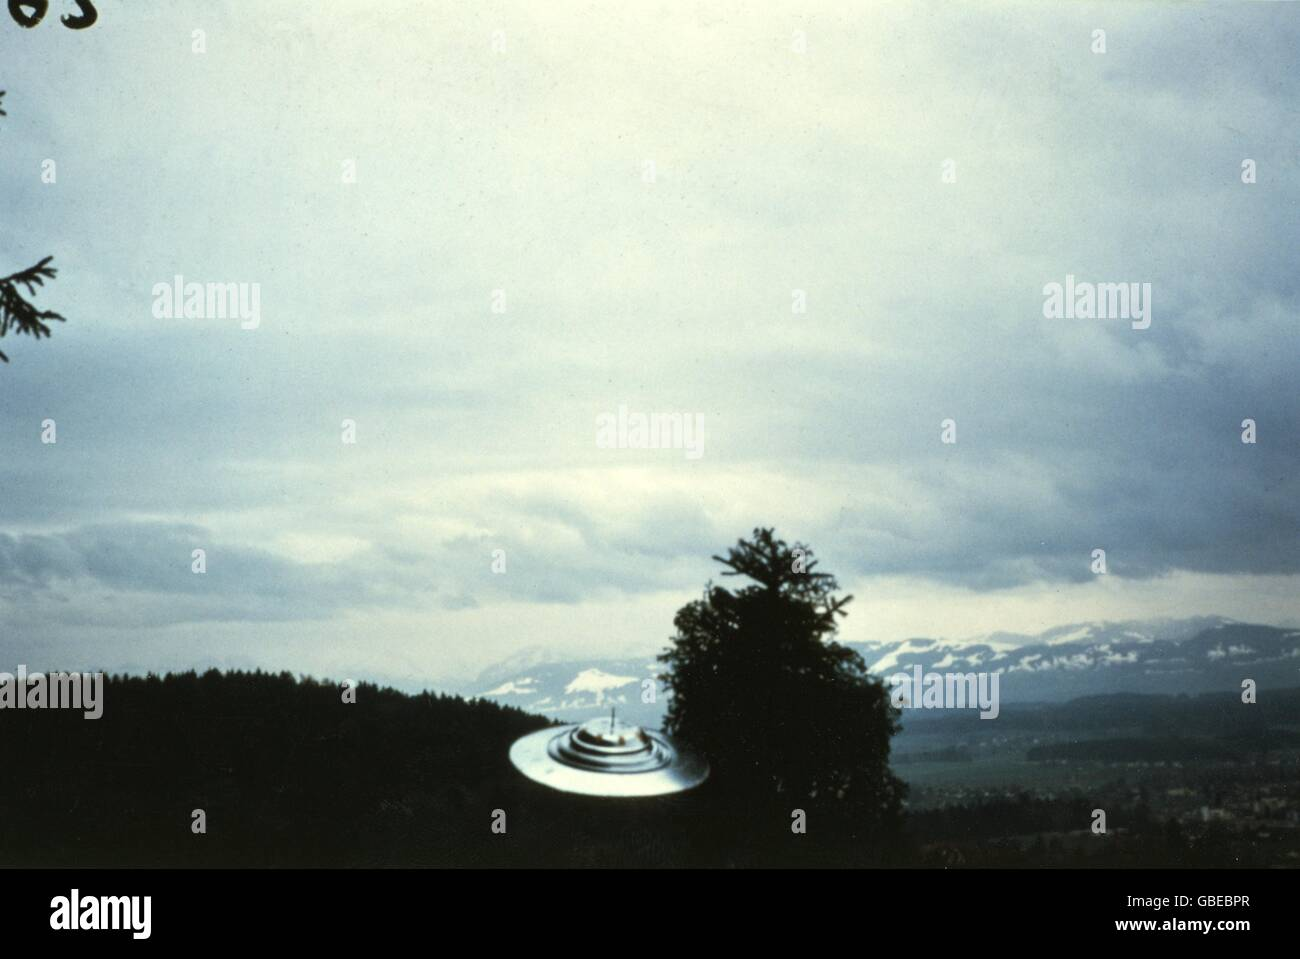 astronautics, unidentified flying object (UFO), flying ufo, show flight of Semjas space ship, around a fir tree, - Stock Image